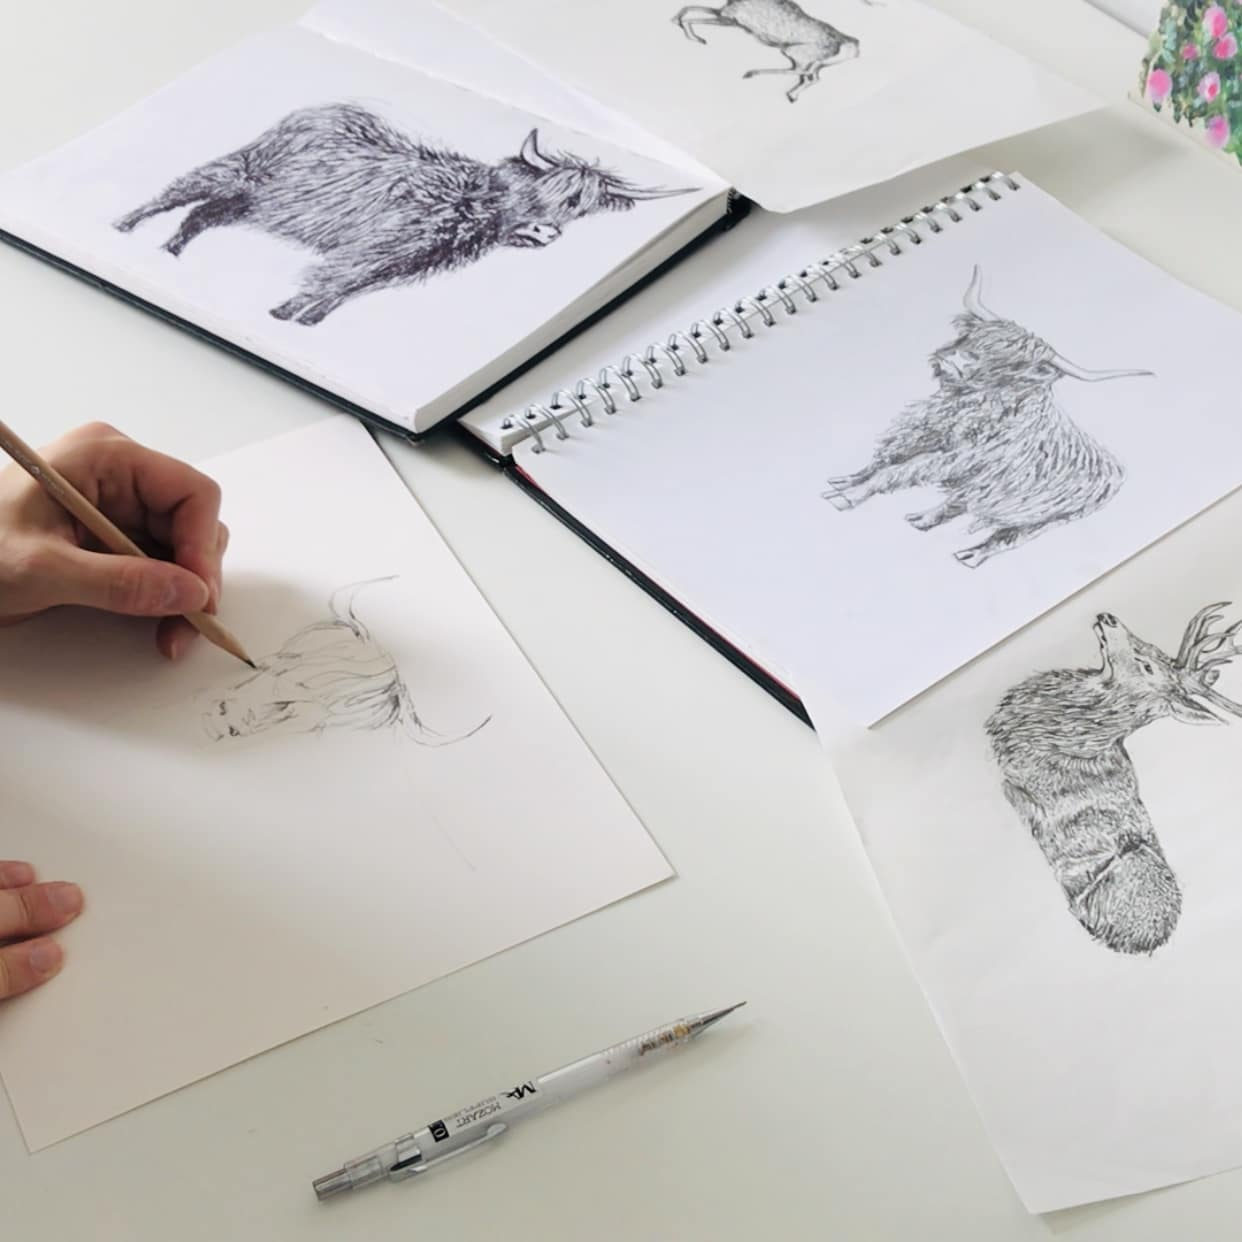 Cherith Harrison drawing a highland cow